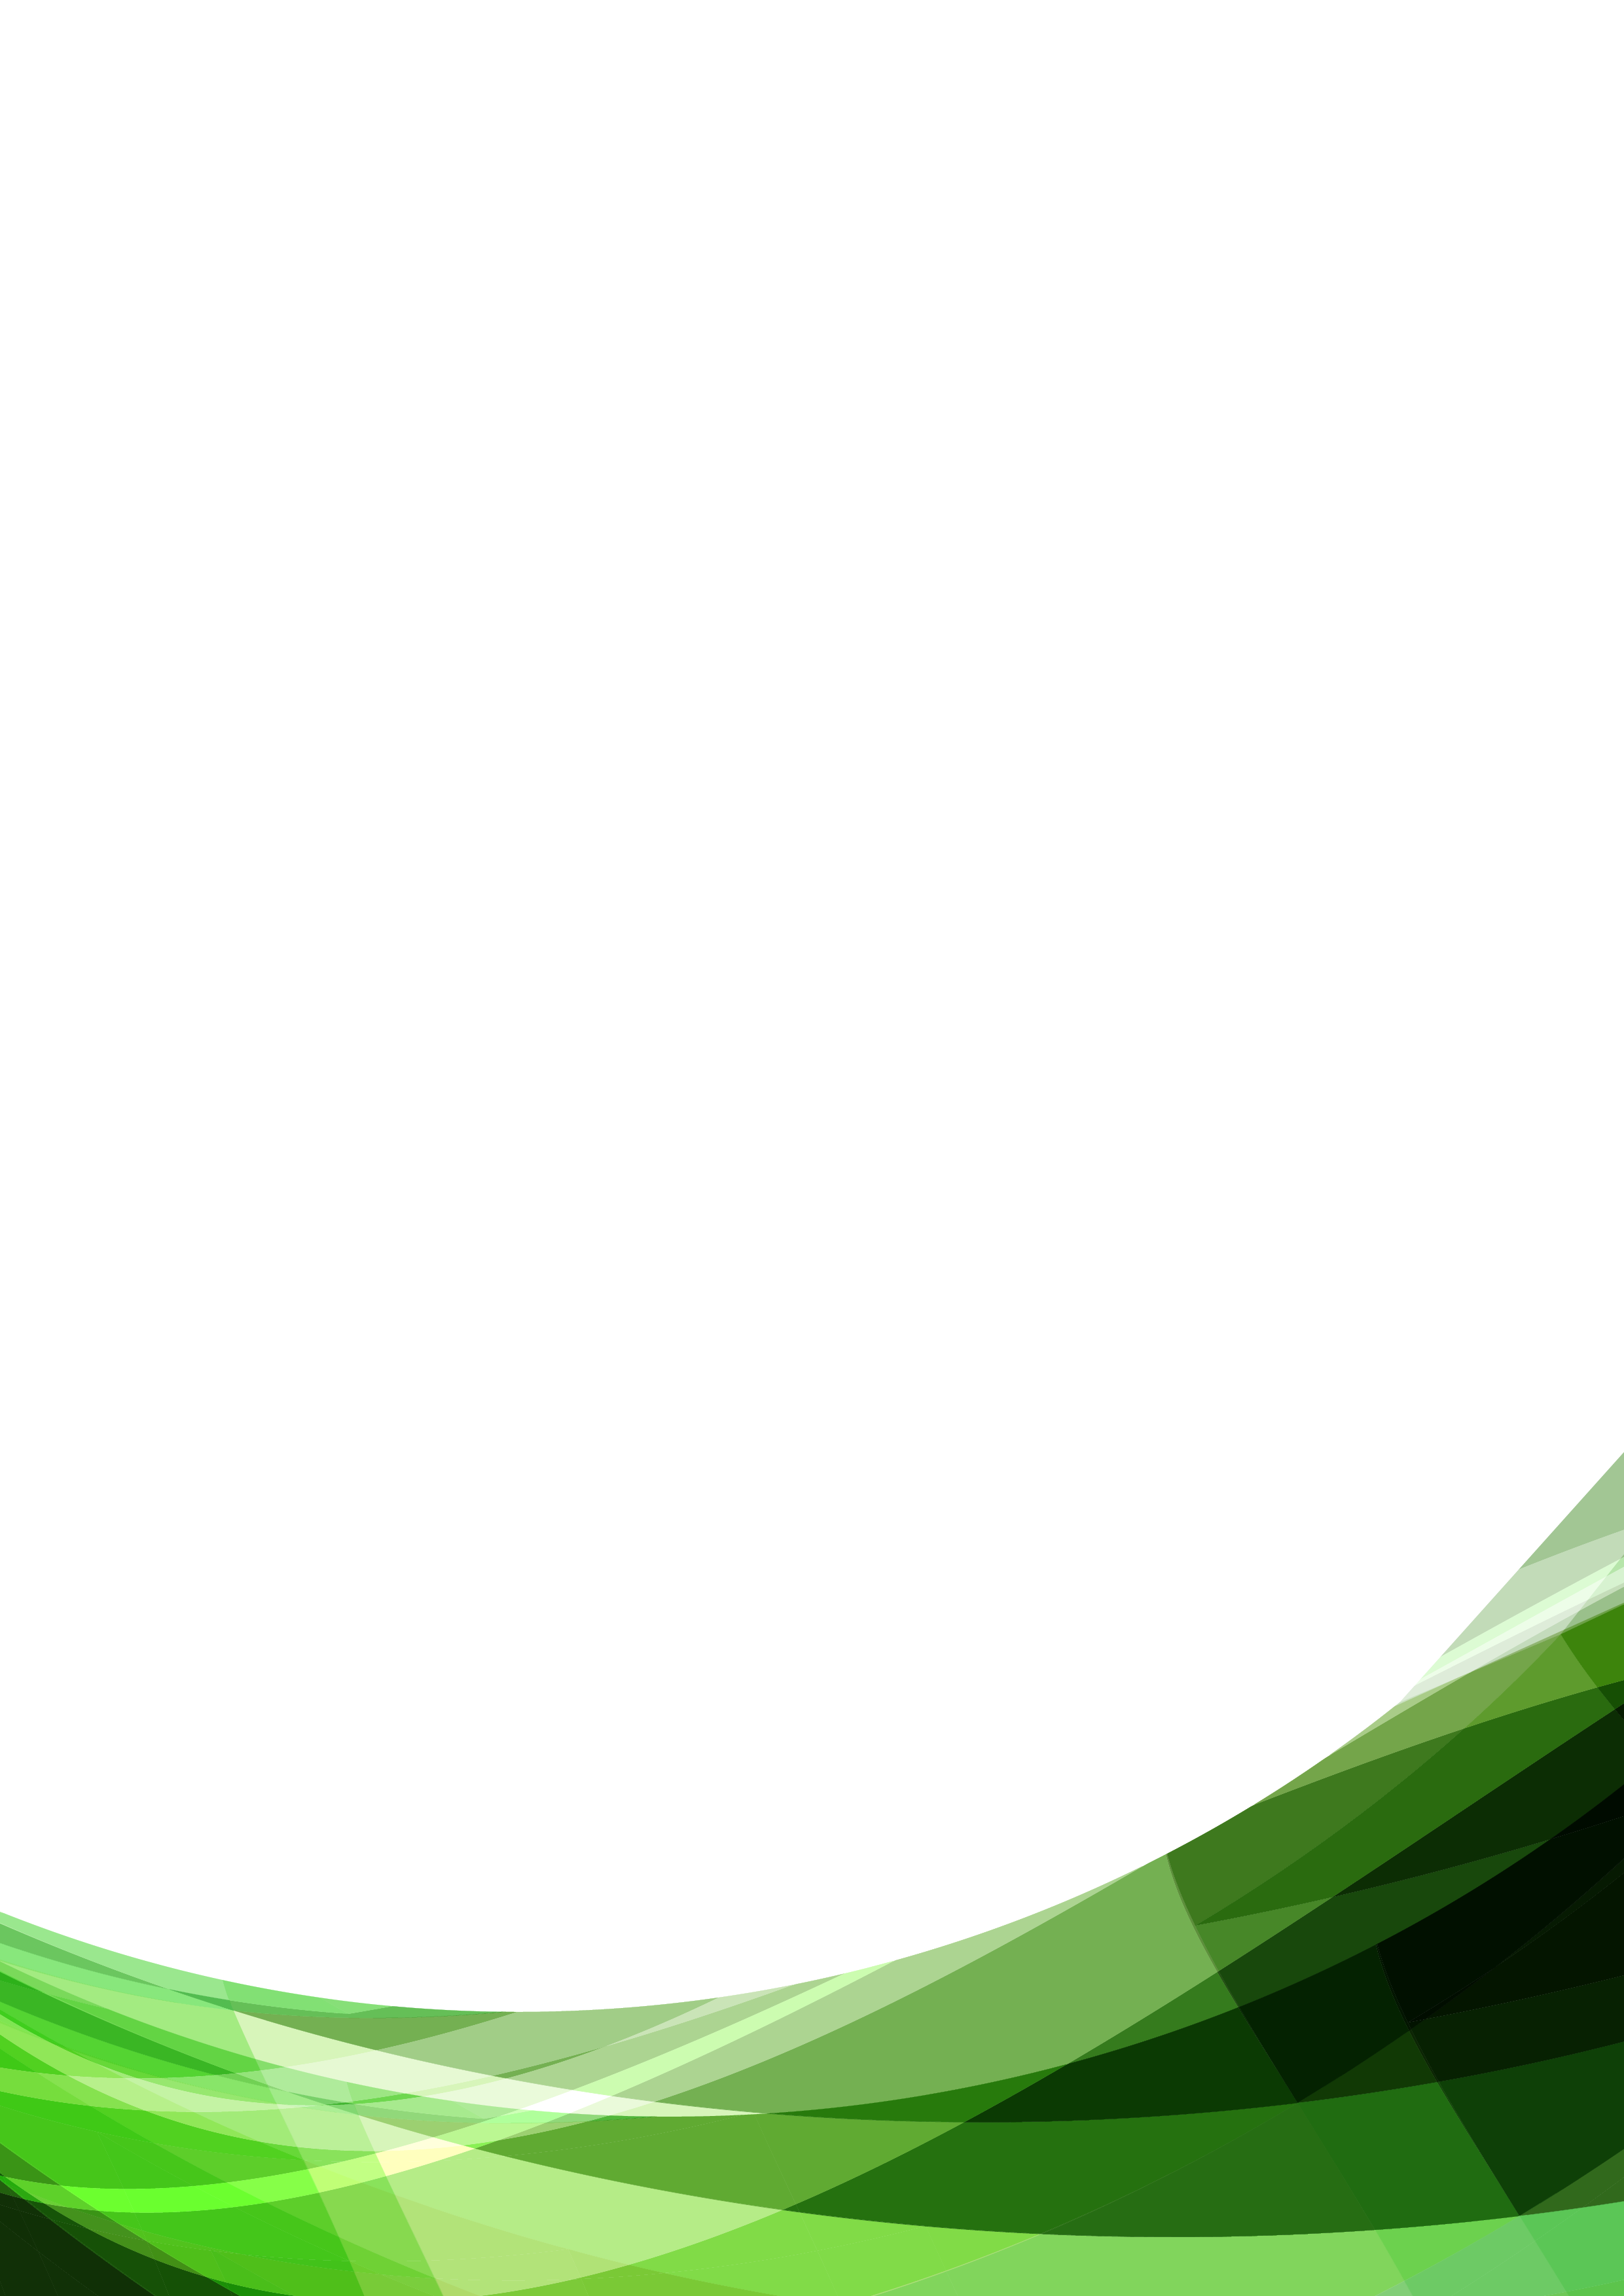 Green png. Background images transparent free